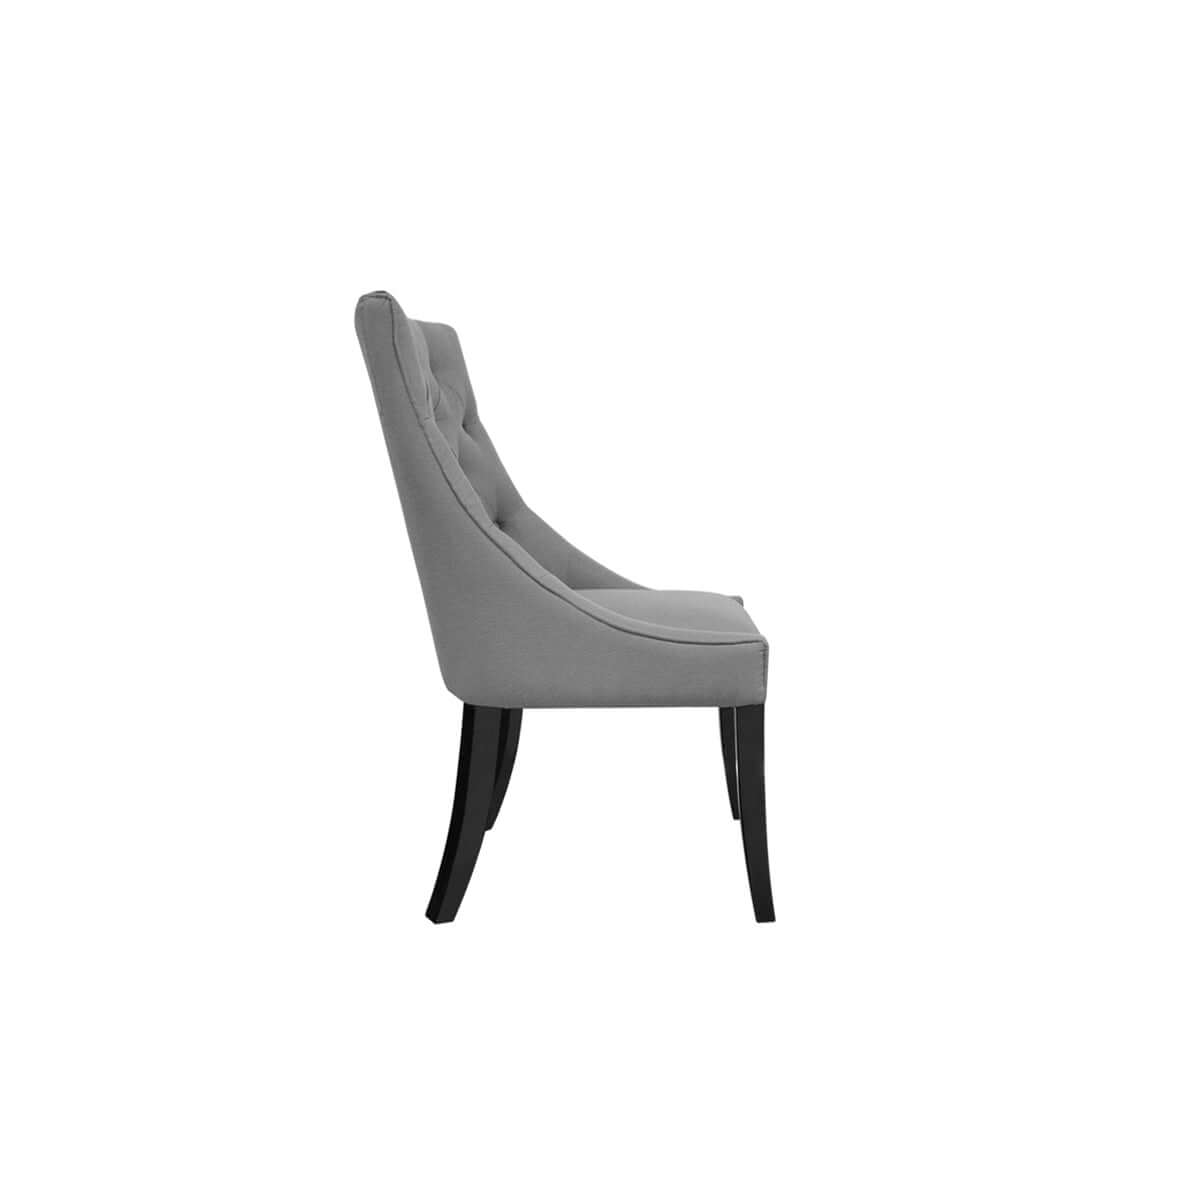 tufted dining chair made in jakarta - side view